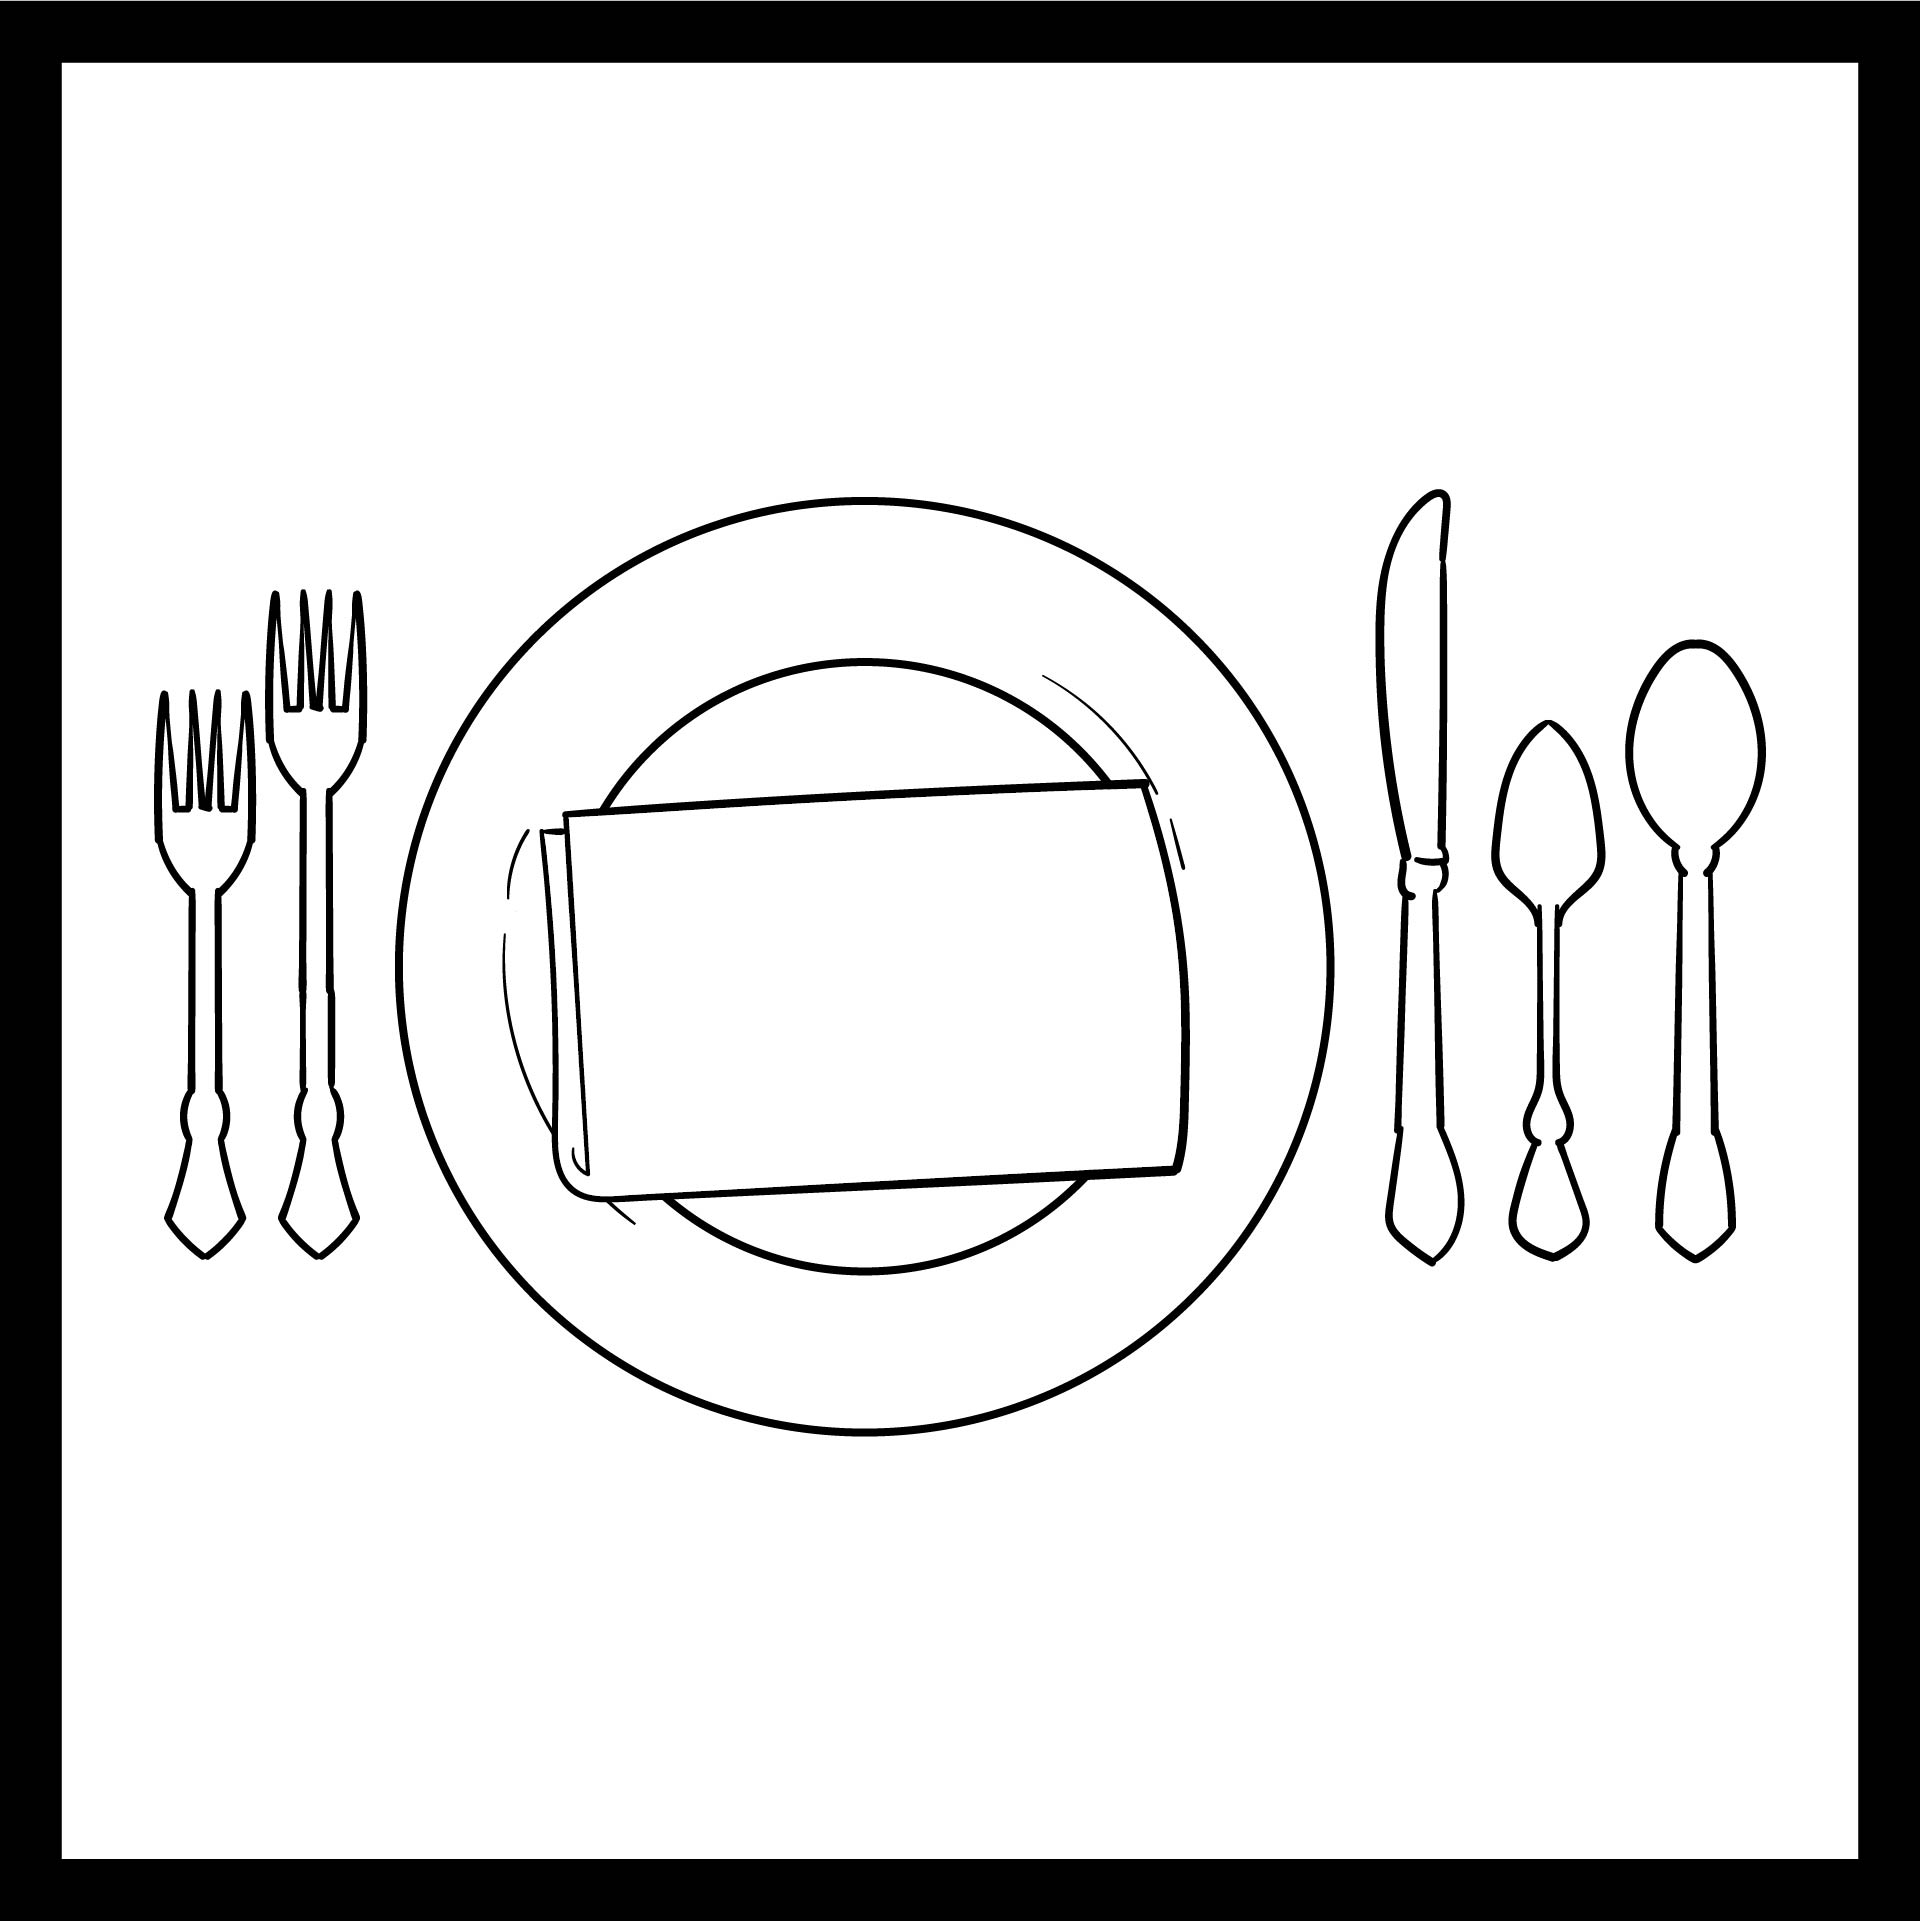 Preschool Manners Coloring Pages Printable